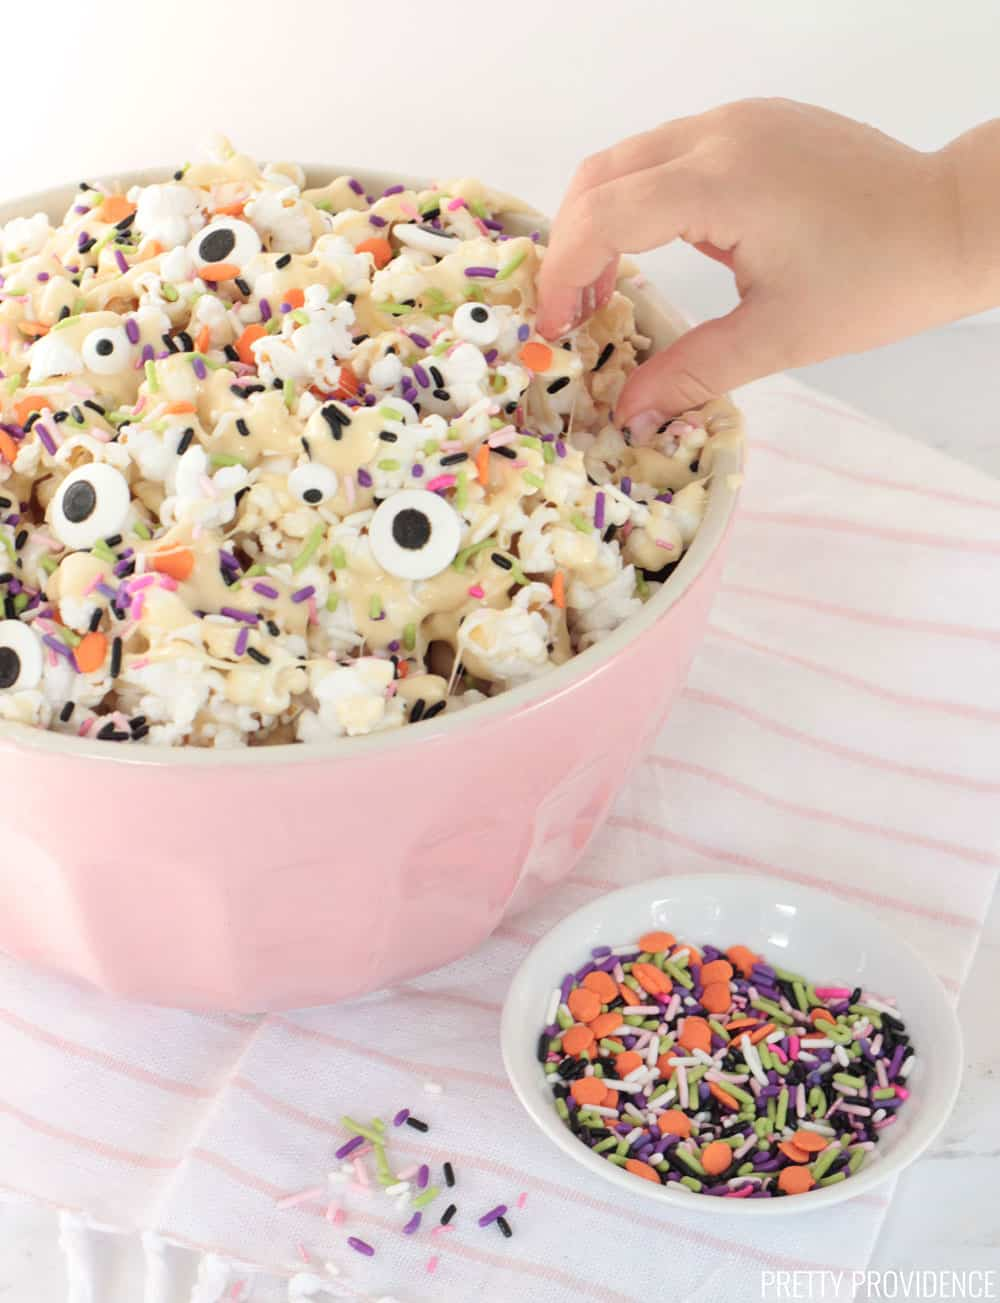 Halloween popcorn in a pink mixing bowl, candy eyeballs and Halloween sprinkles on top, a small hand reaching for popcorn.